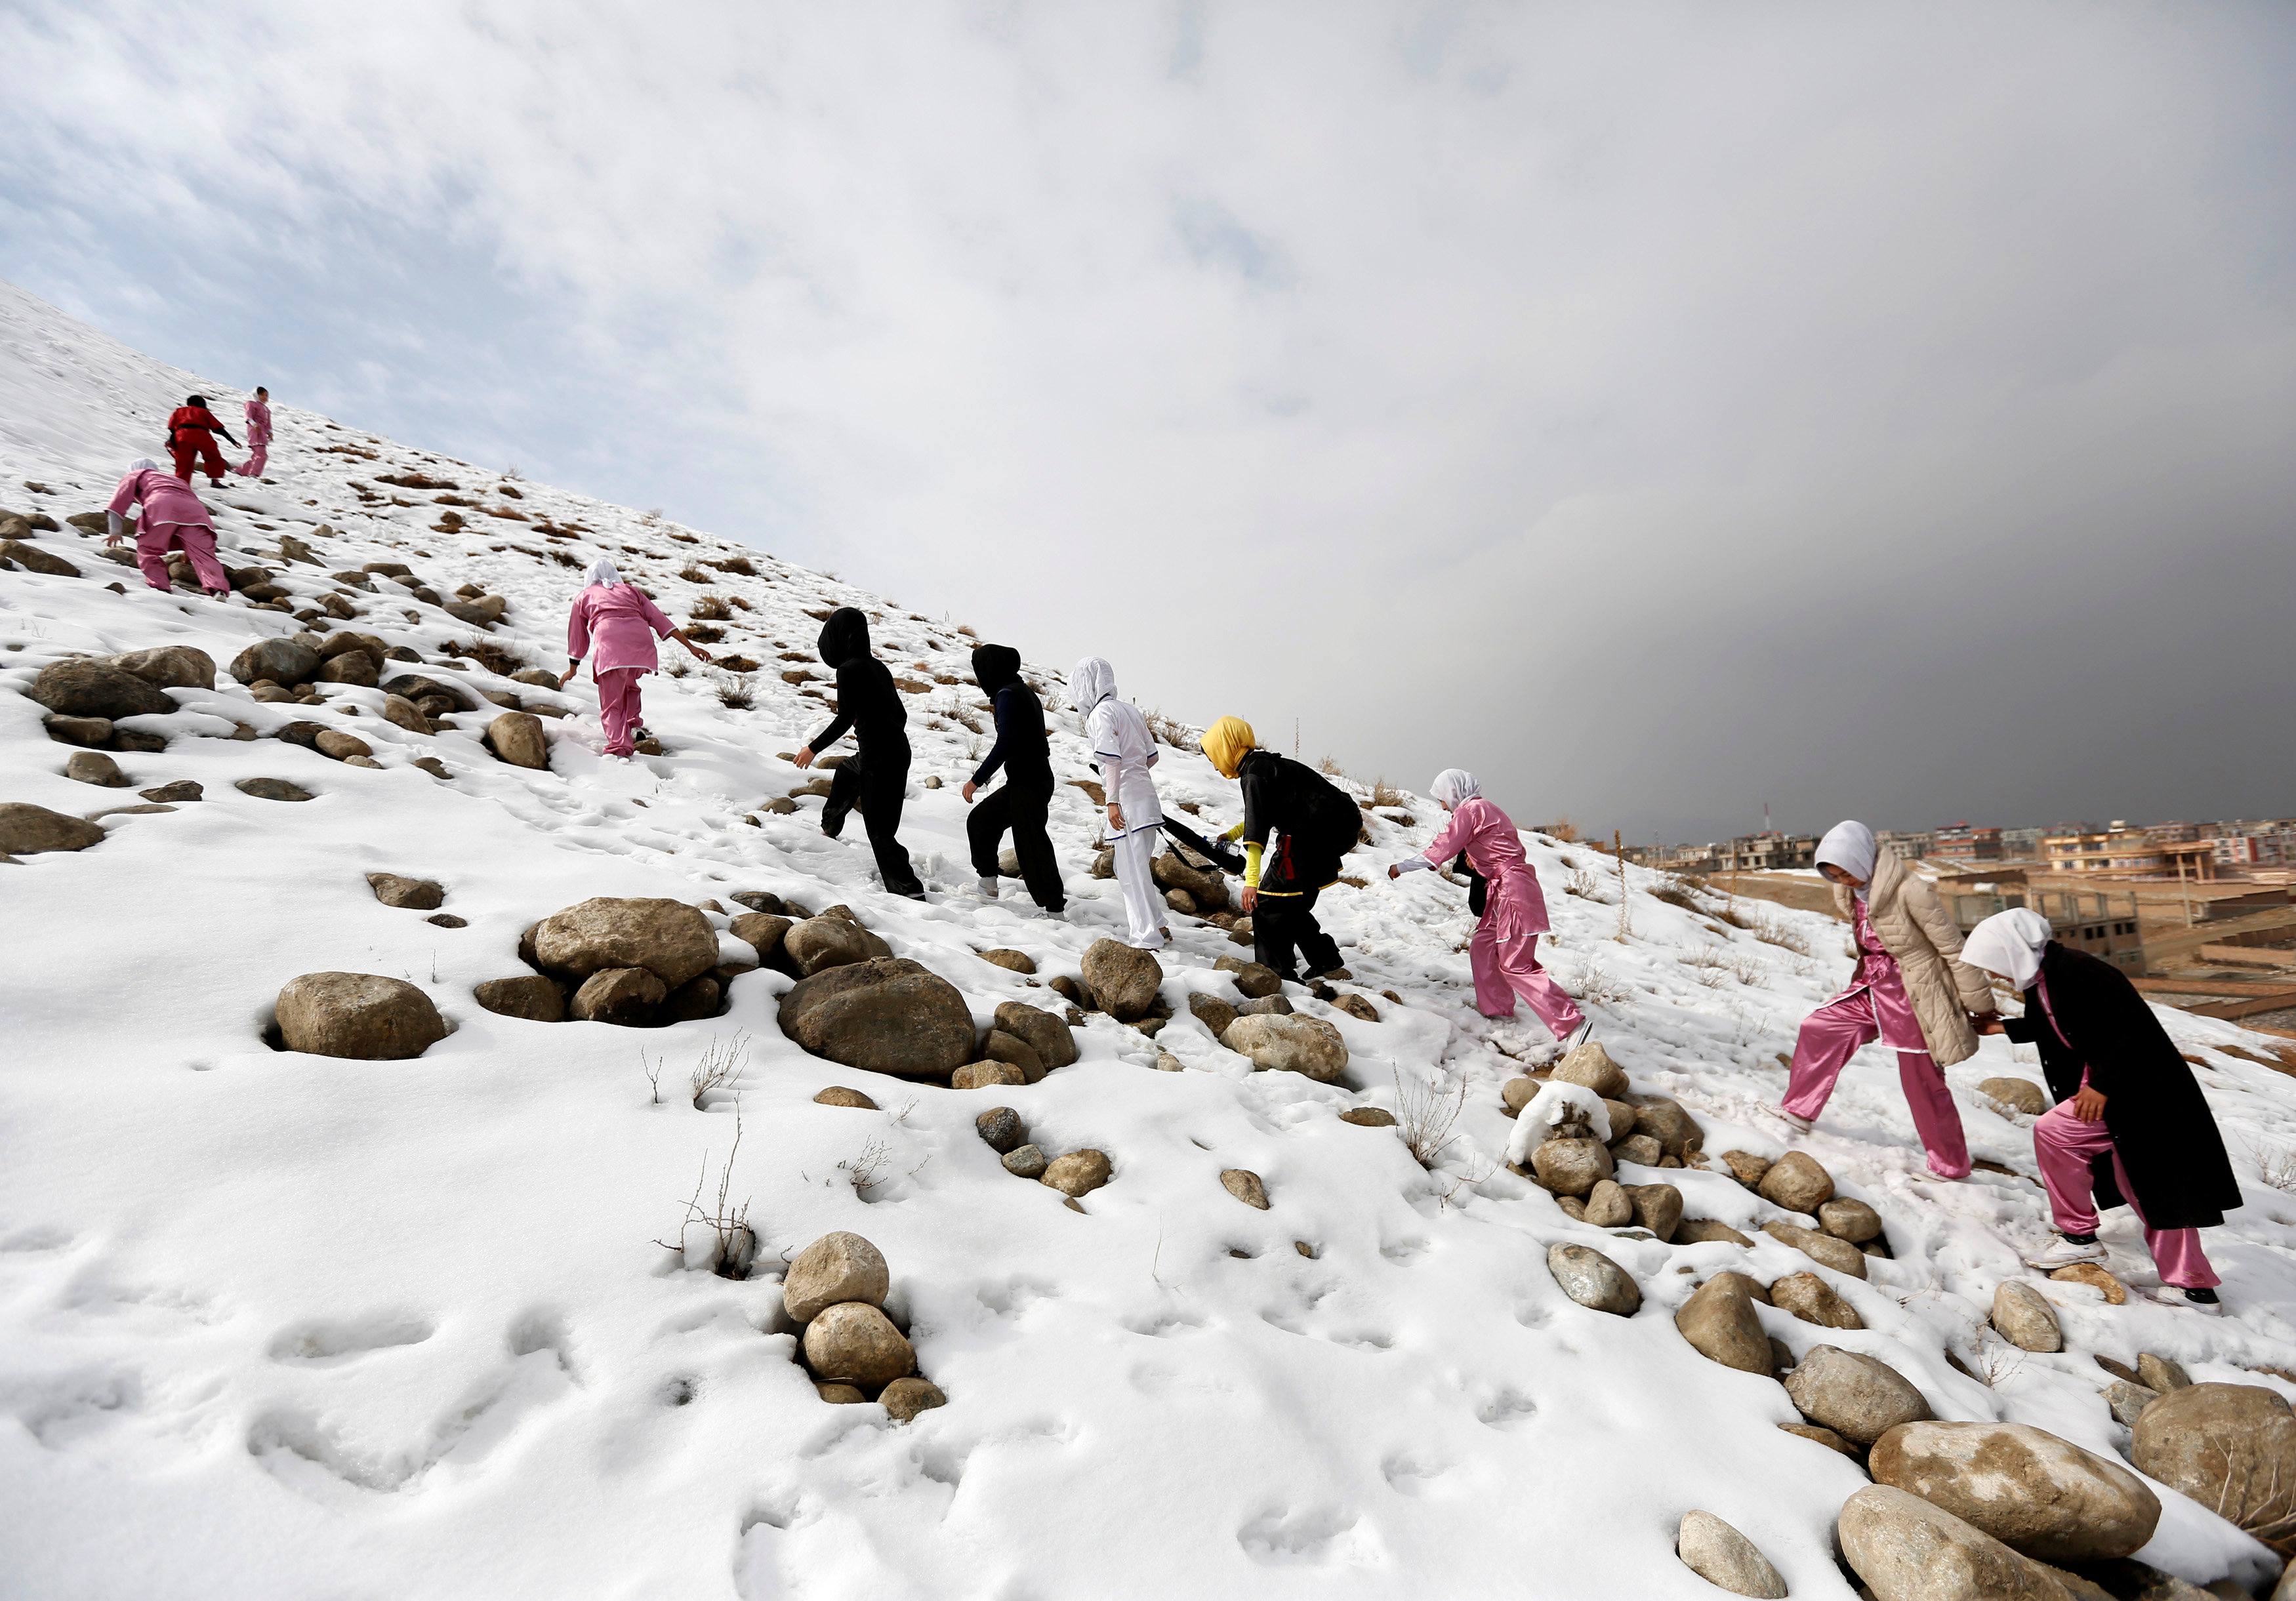 Students of the Shaolin Wushu club climb a hill as they arrive to practice in Kabul, Afghanistan January 29, 2017. REUTERS/Mohammad Ismail